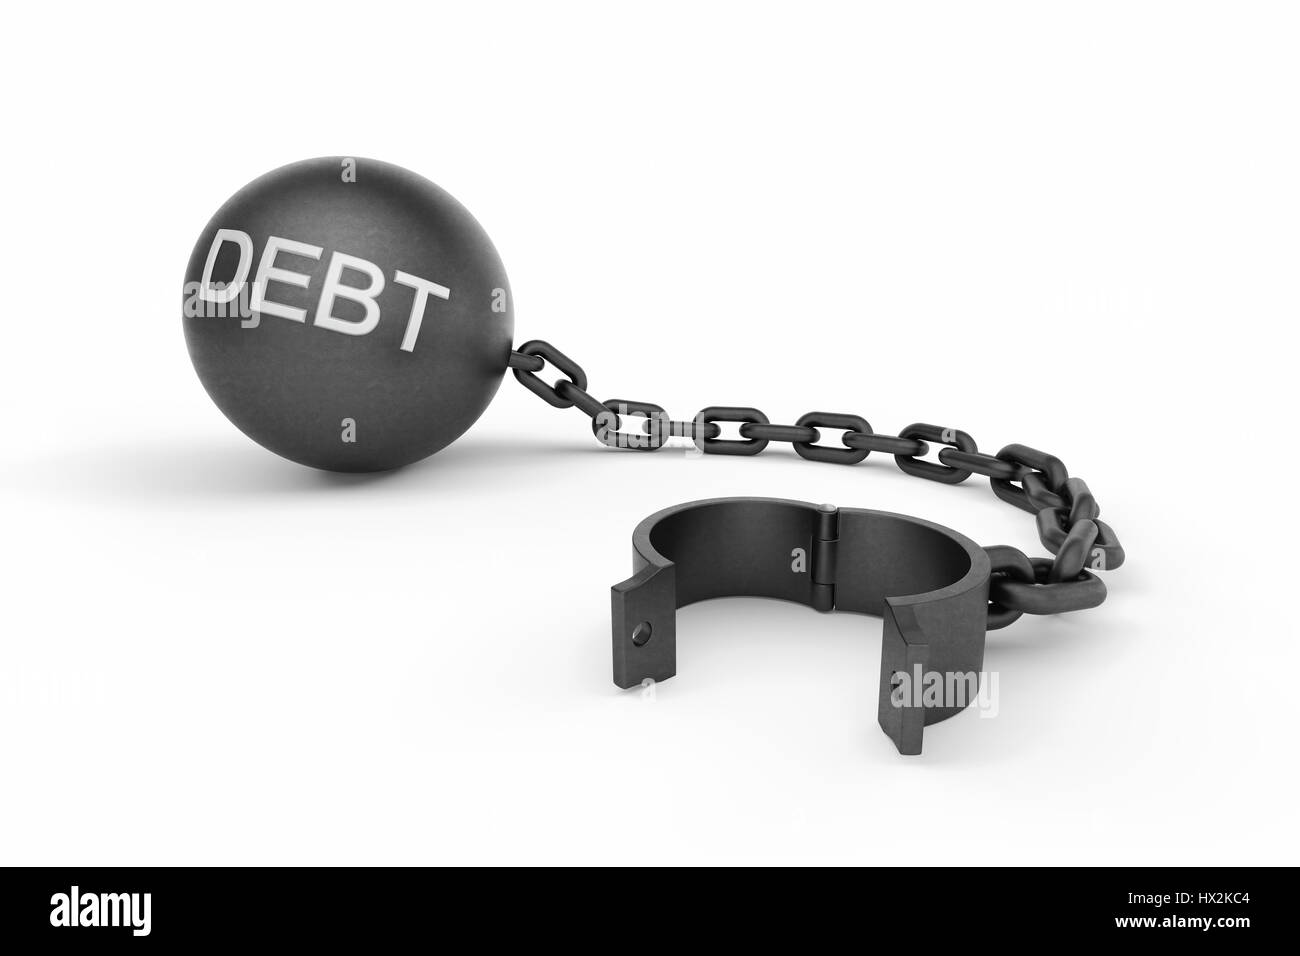 Ball and chain opened with 'DEBT' text on the ball. This image indicates that a person is free from his - Stock Image